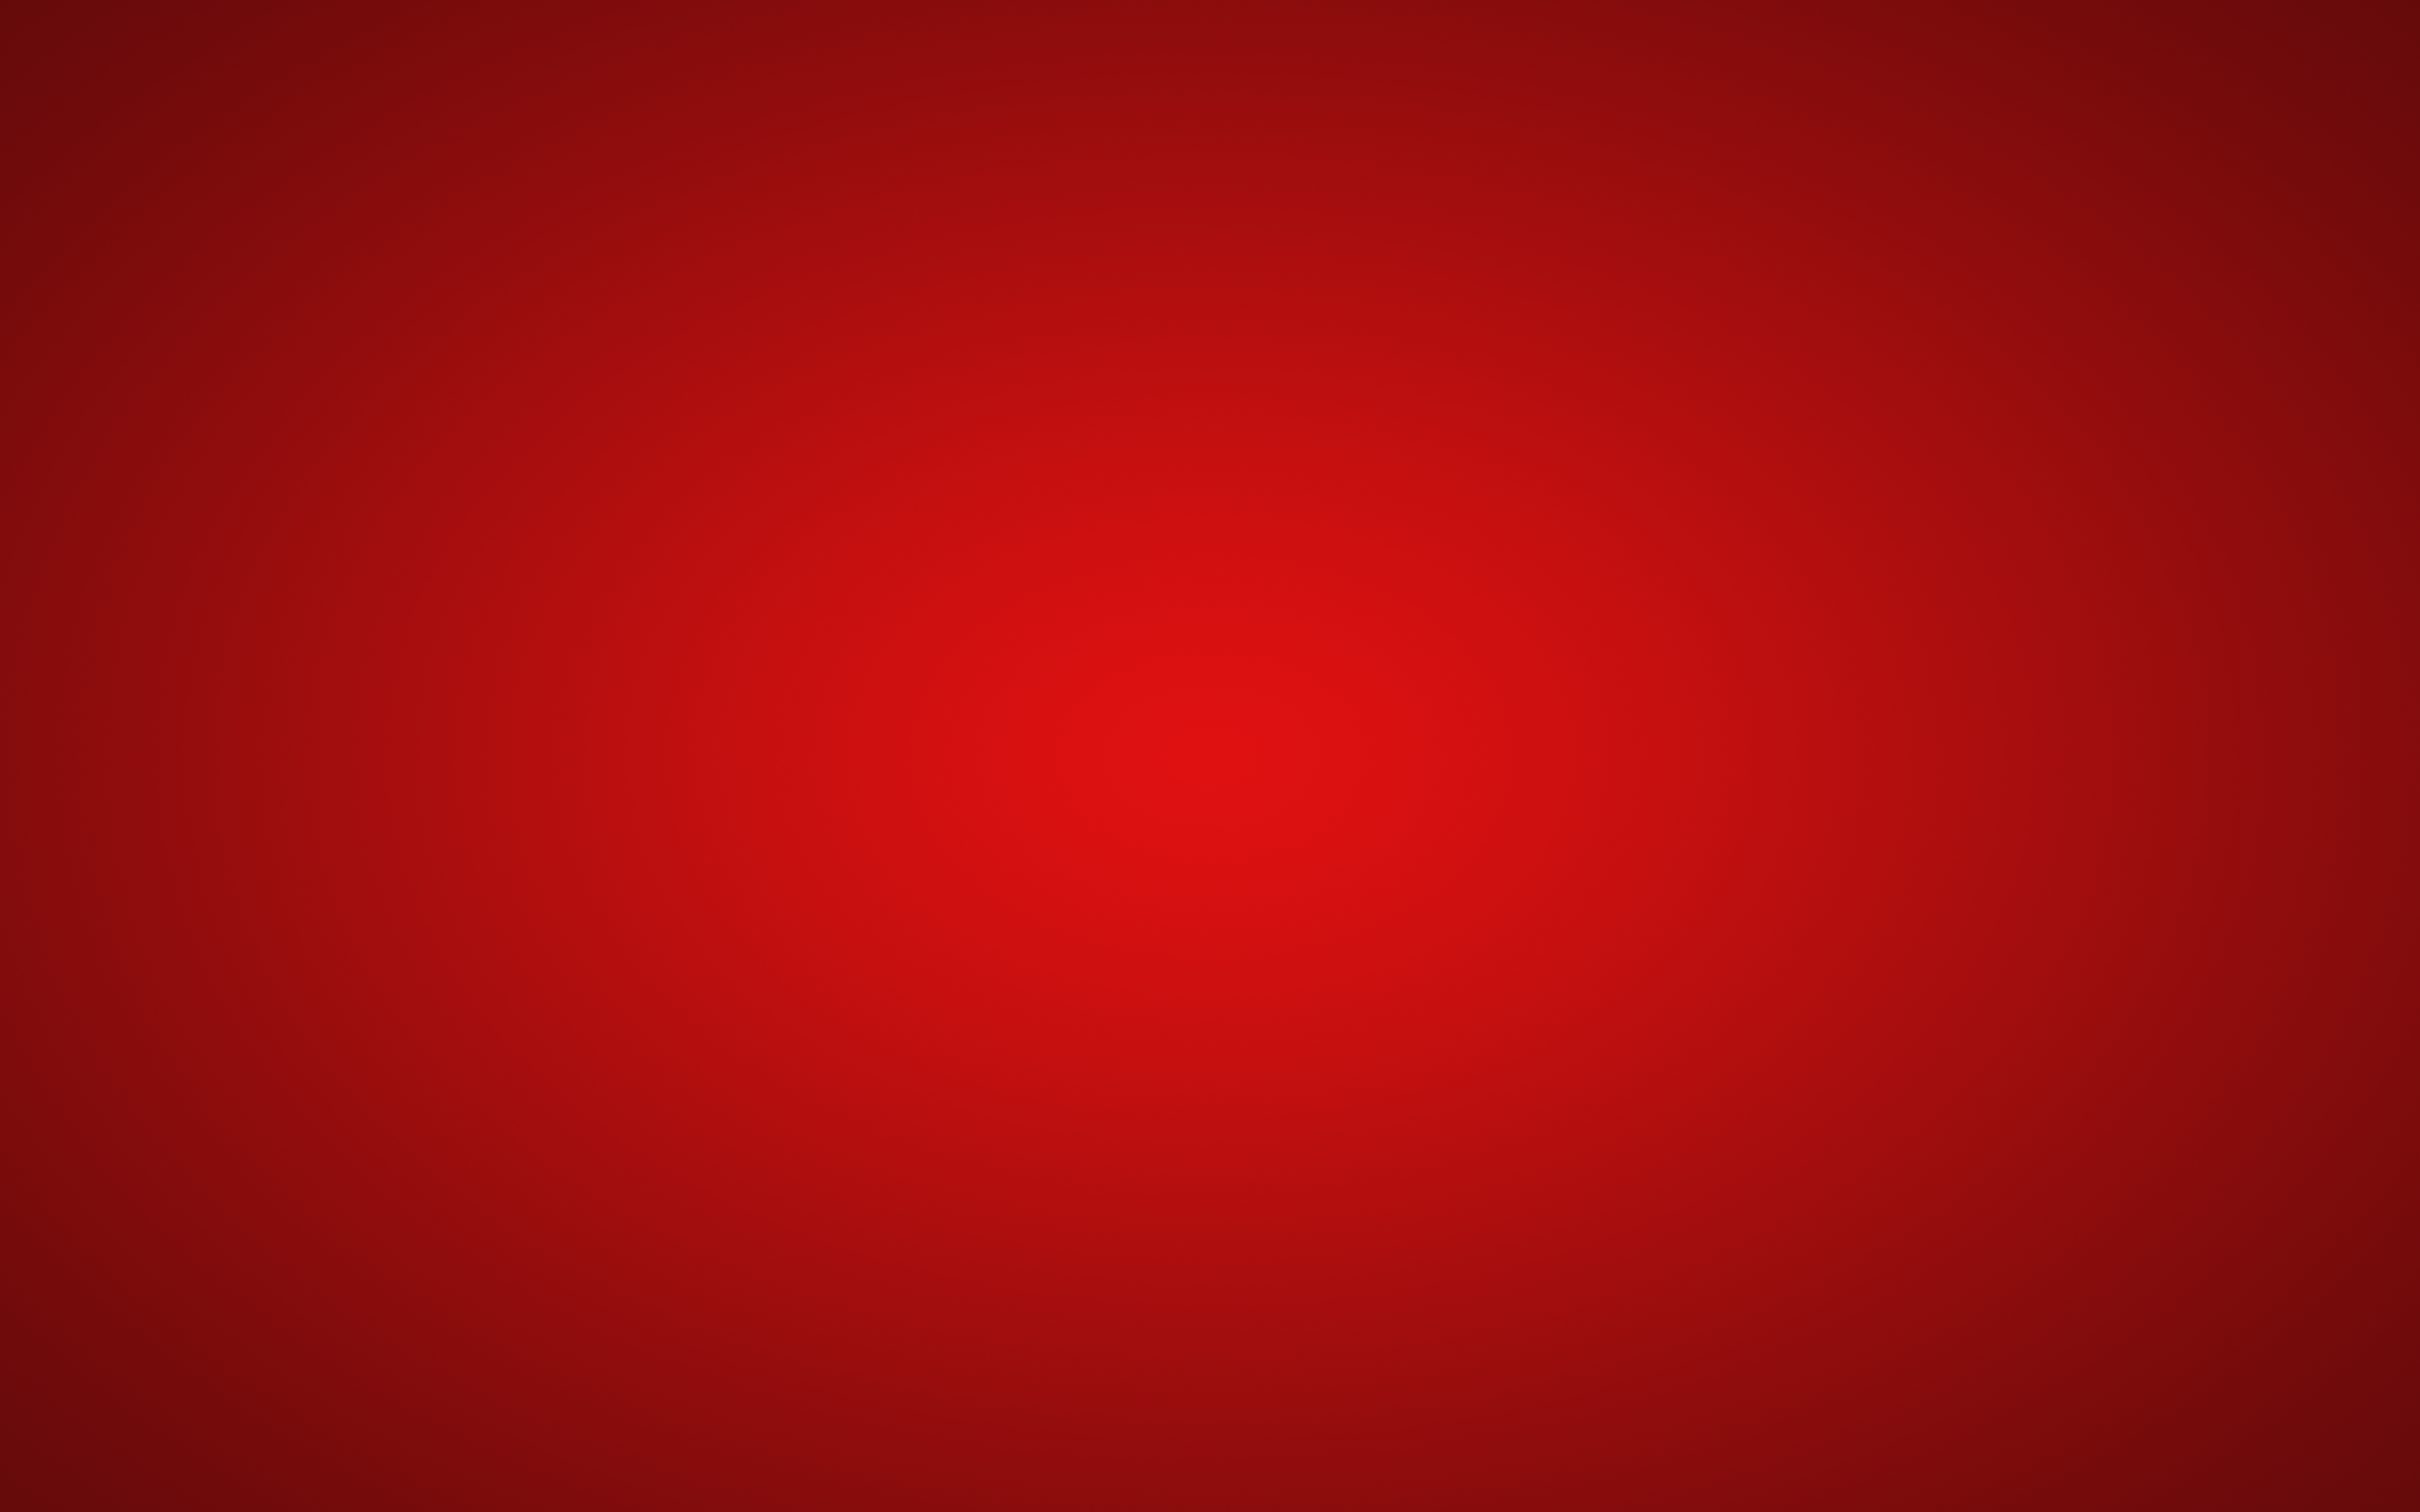 Plain Color Red wallpaper